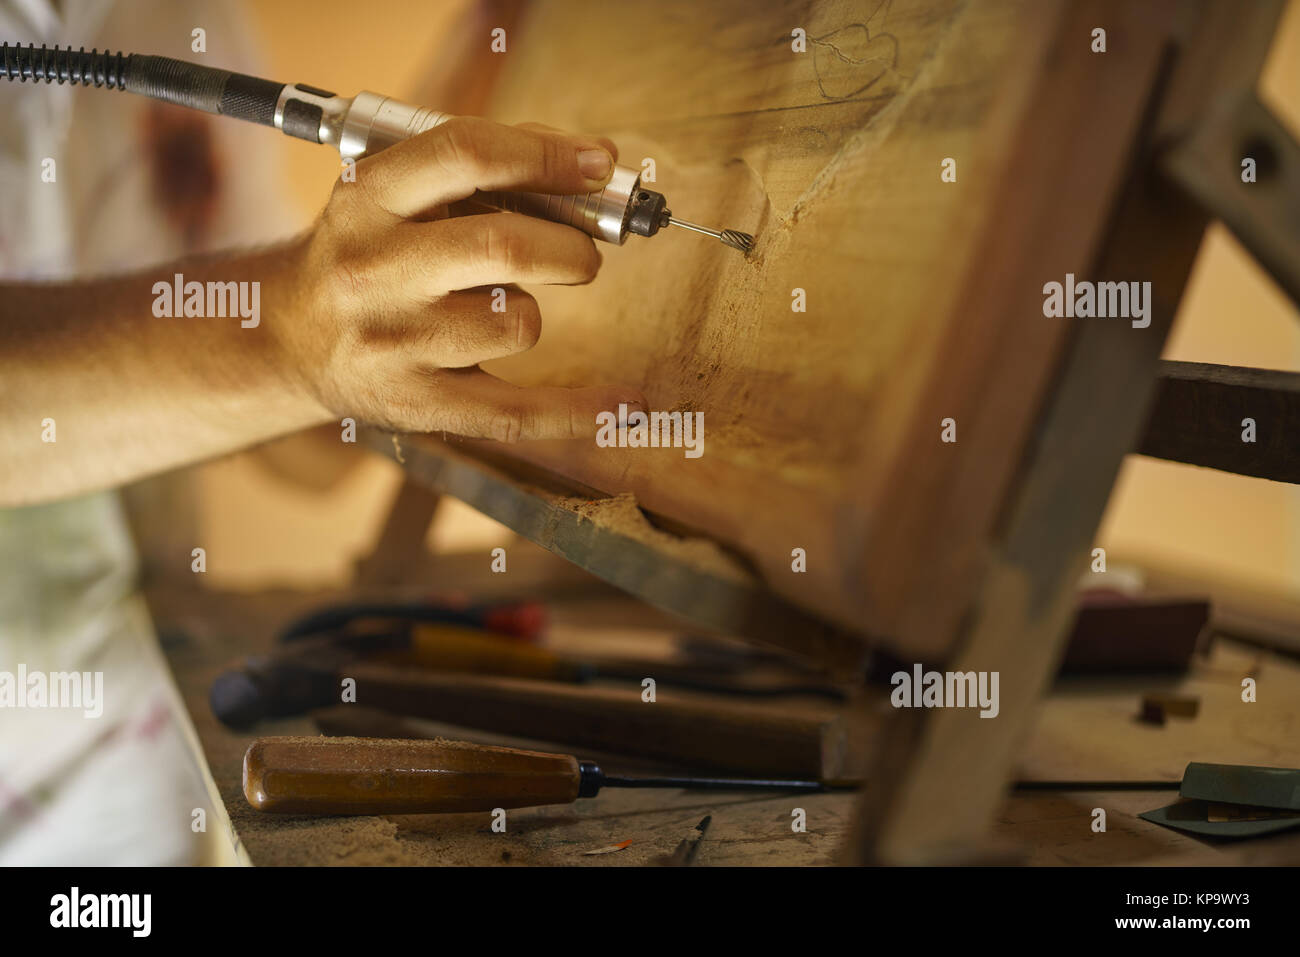 Sculptor Painter Artist Chiseling A Wooden Bas Relief-2 Stock Photo